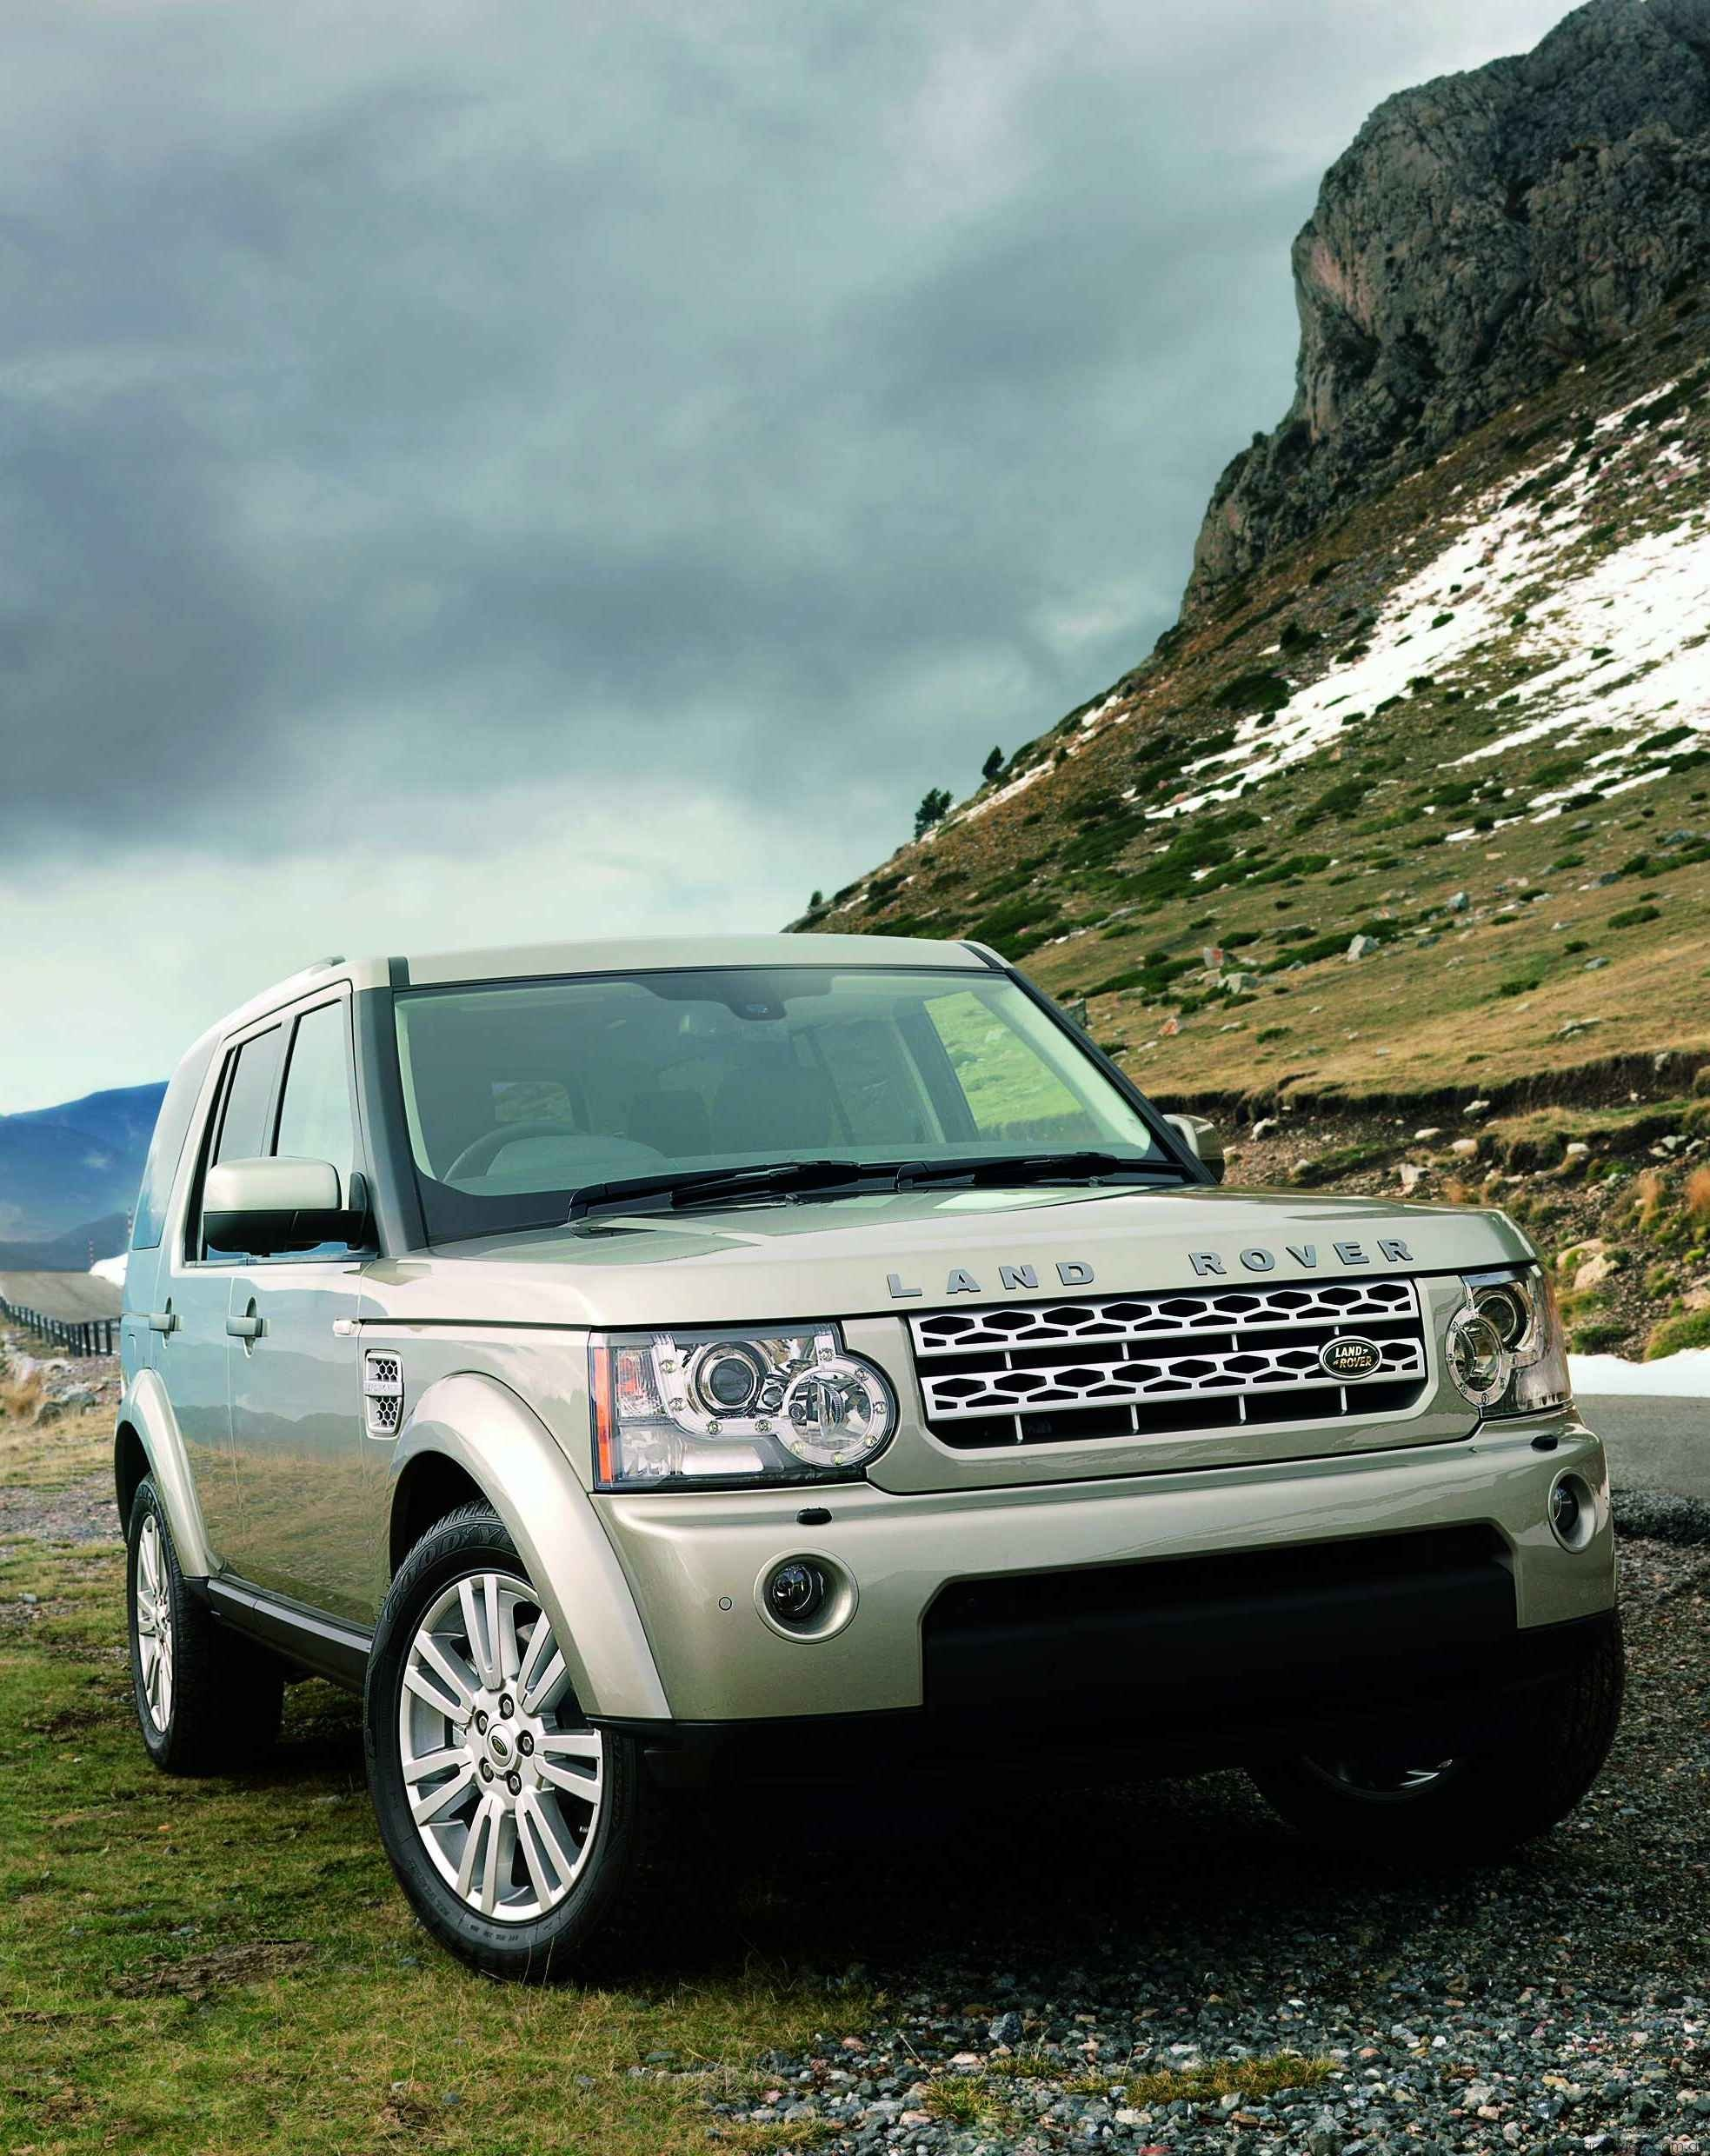 2009 land rover discovery 4 revealed photos 1 of 7. Black Bedroom Furniture Sets. Home Design Ideas